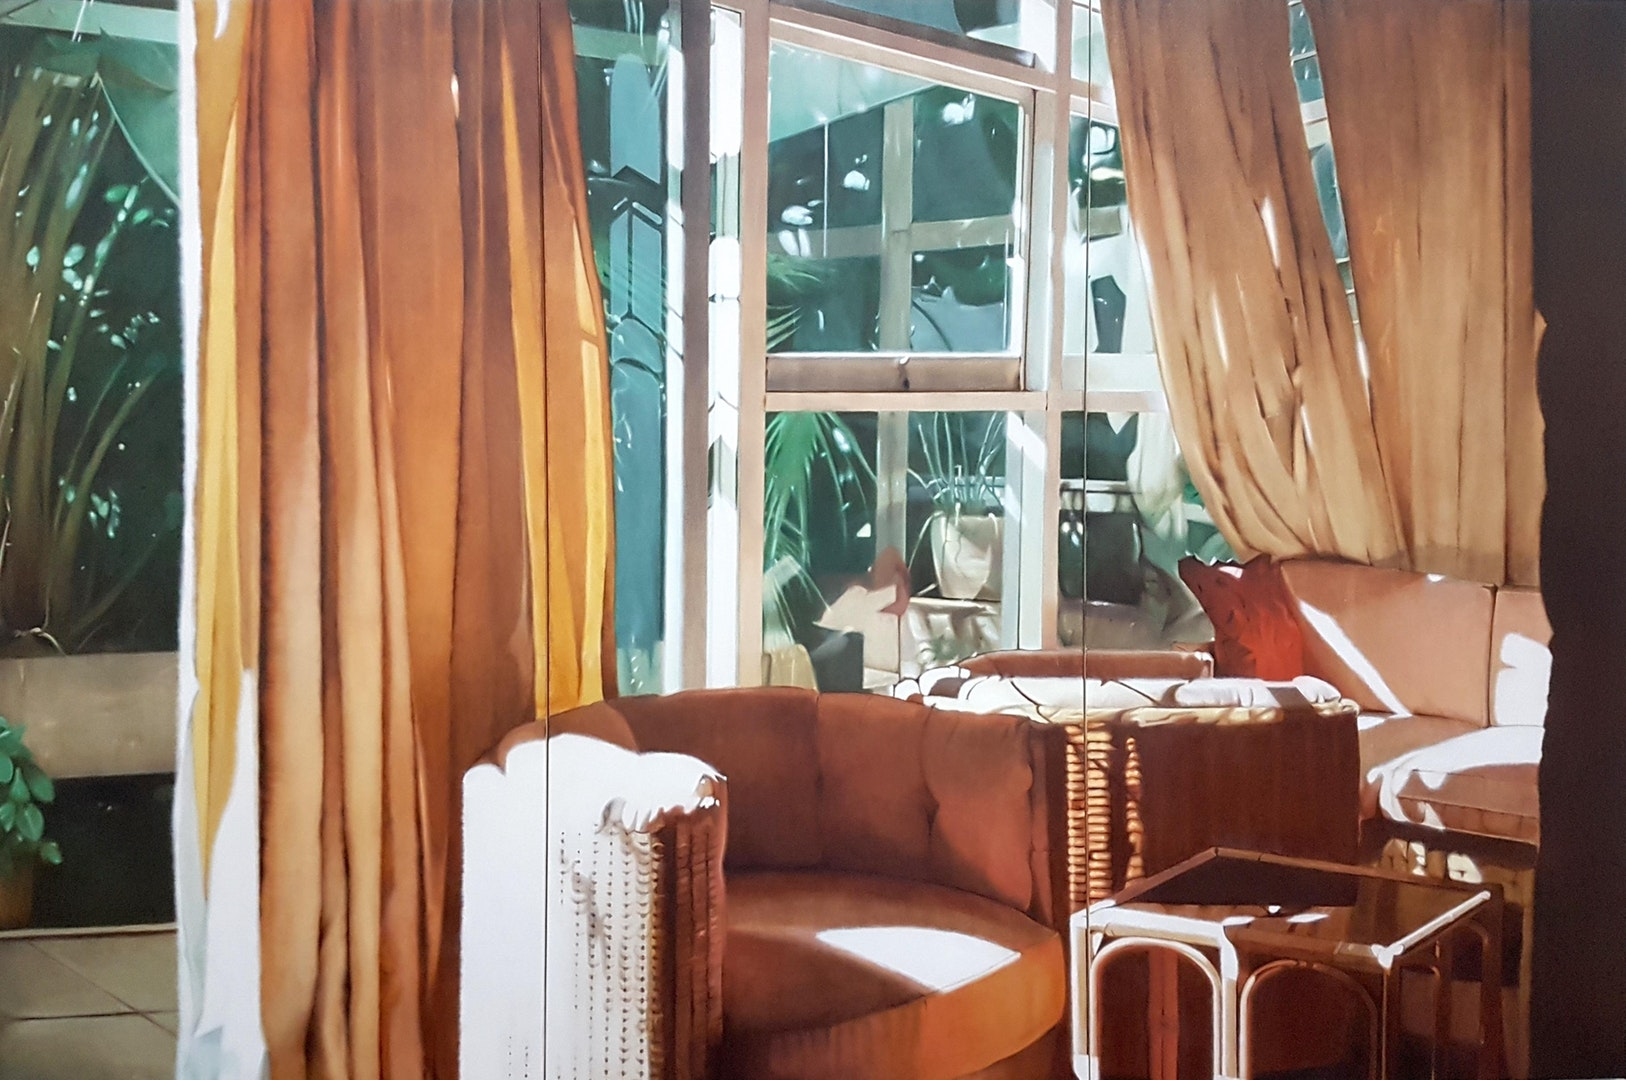 'Interior with Bright Light', James Prapaithong, Oil on canvas, 200 x 300 x 5 cm